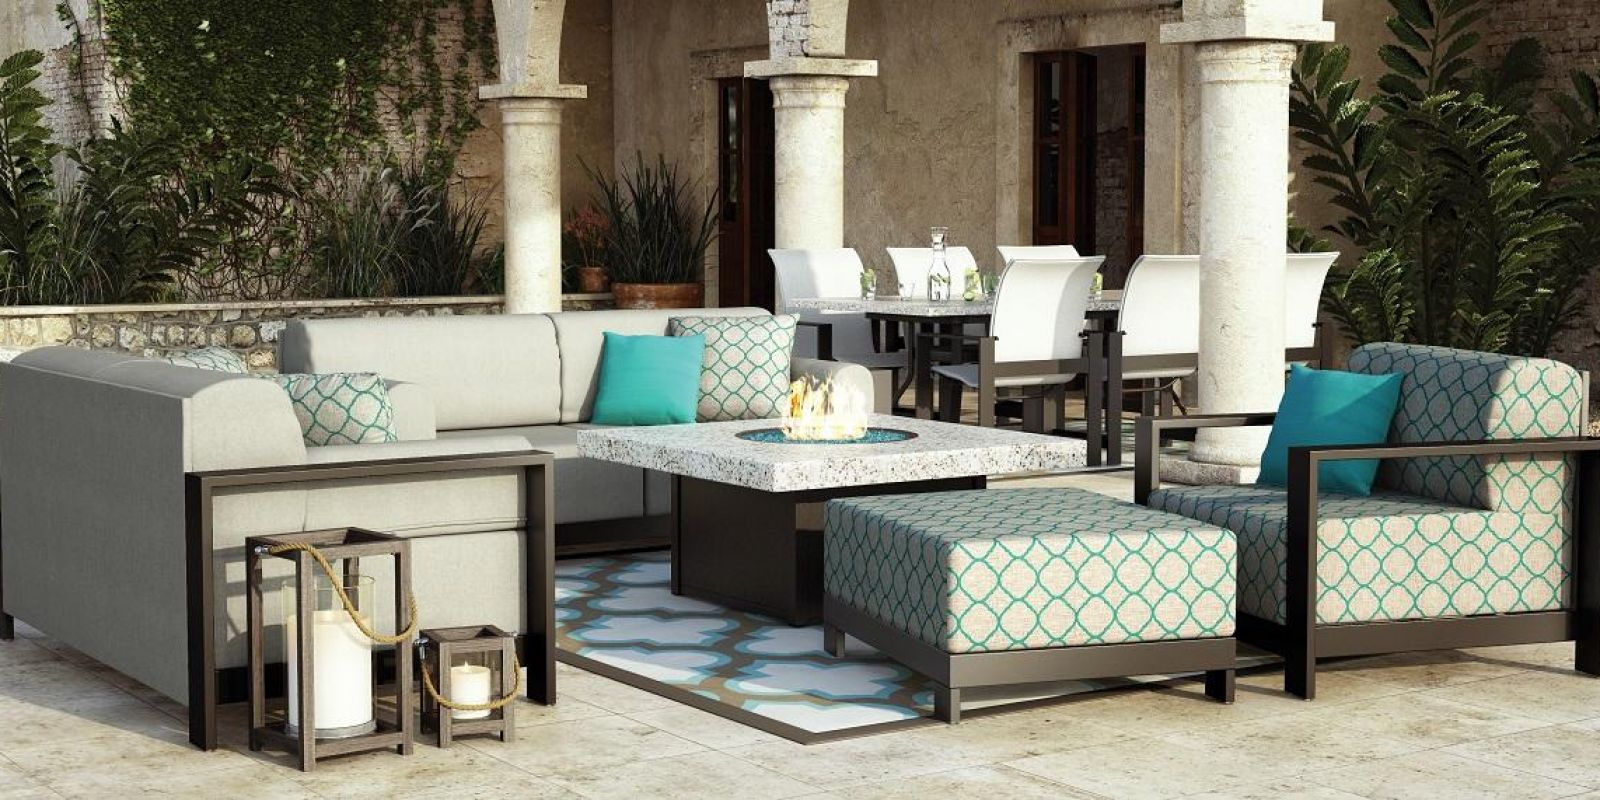 Outdoor Furniture | American Casual Living on Porch & Patio Casual Living id=35598